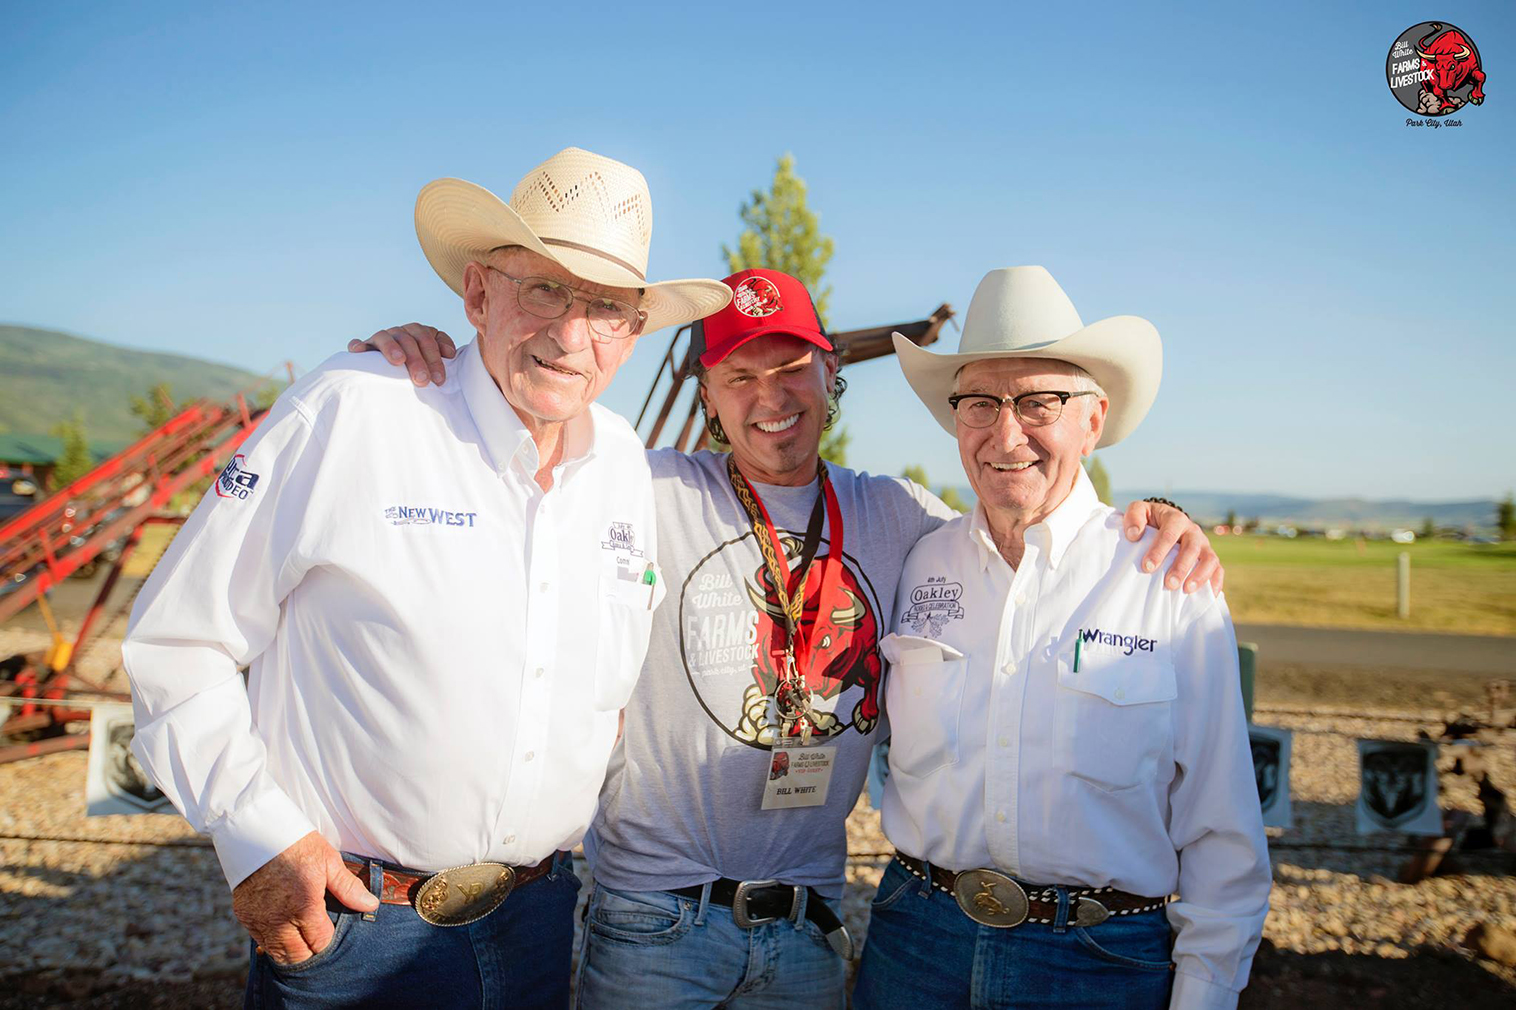 Gerald Young, Bill White, and Ken Woolstenhulme at the Oakley Rodeo 2017.